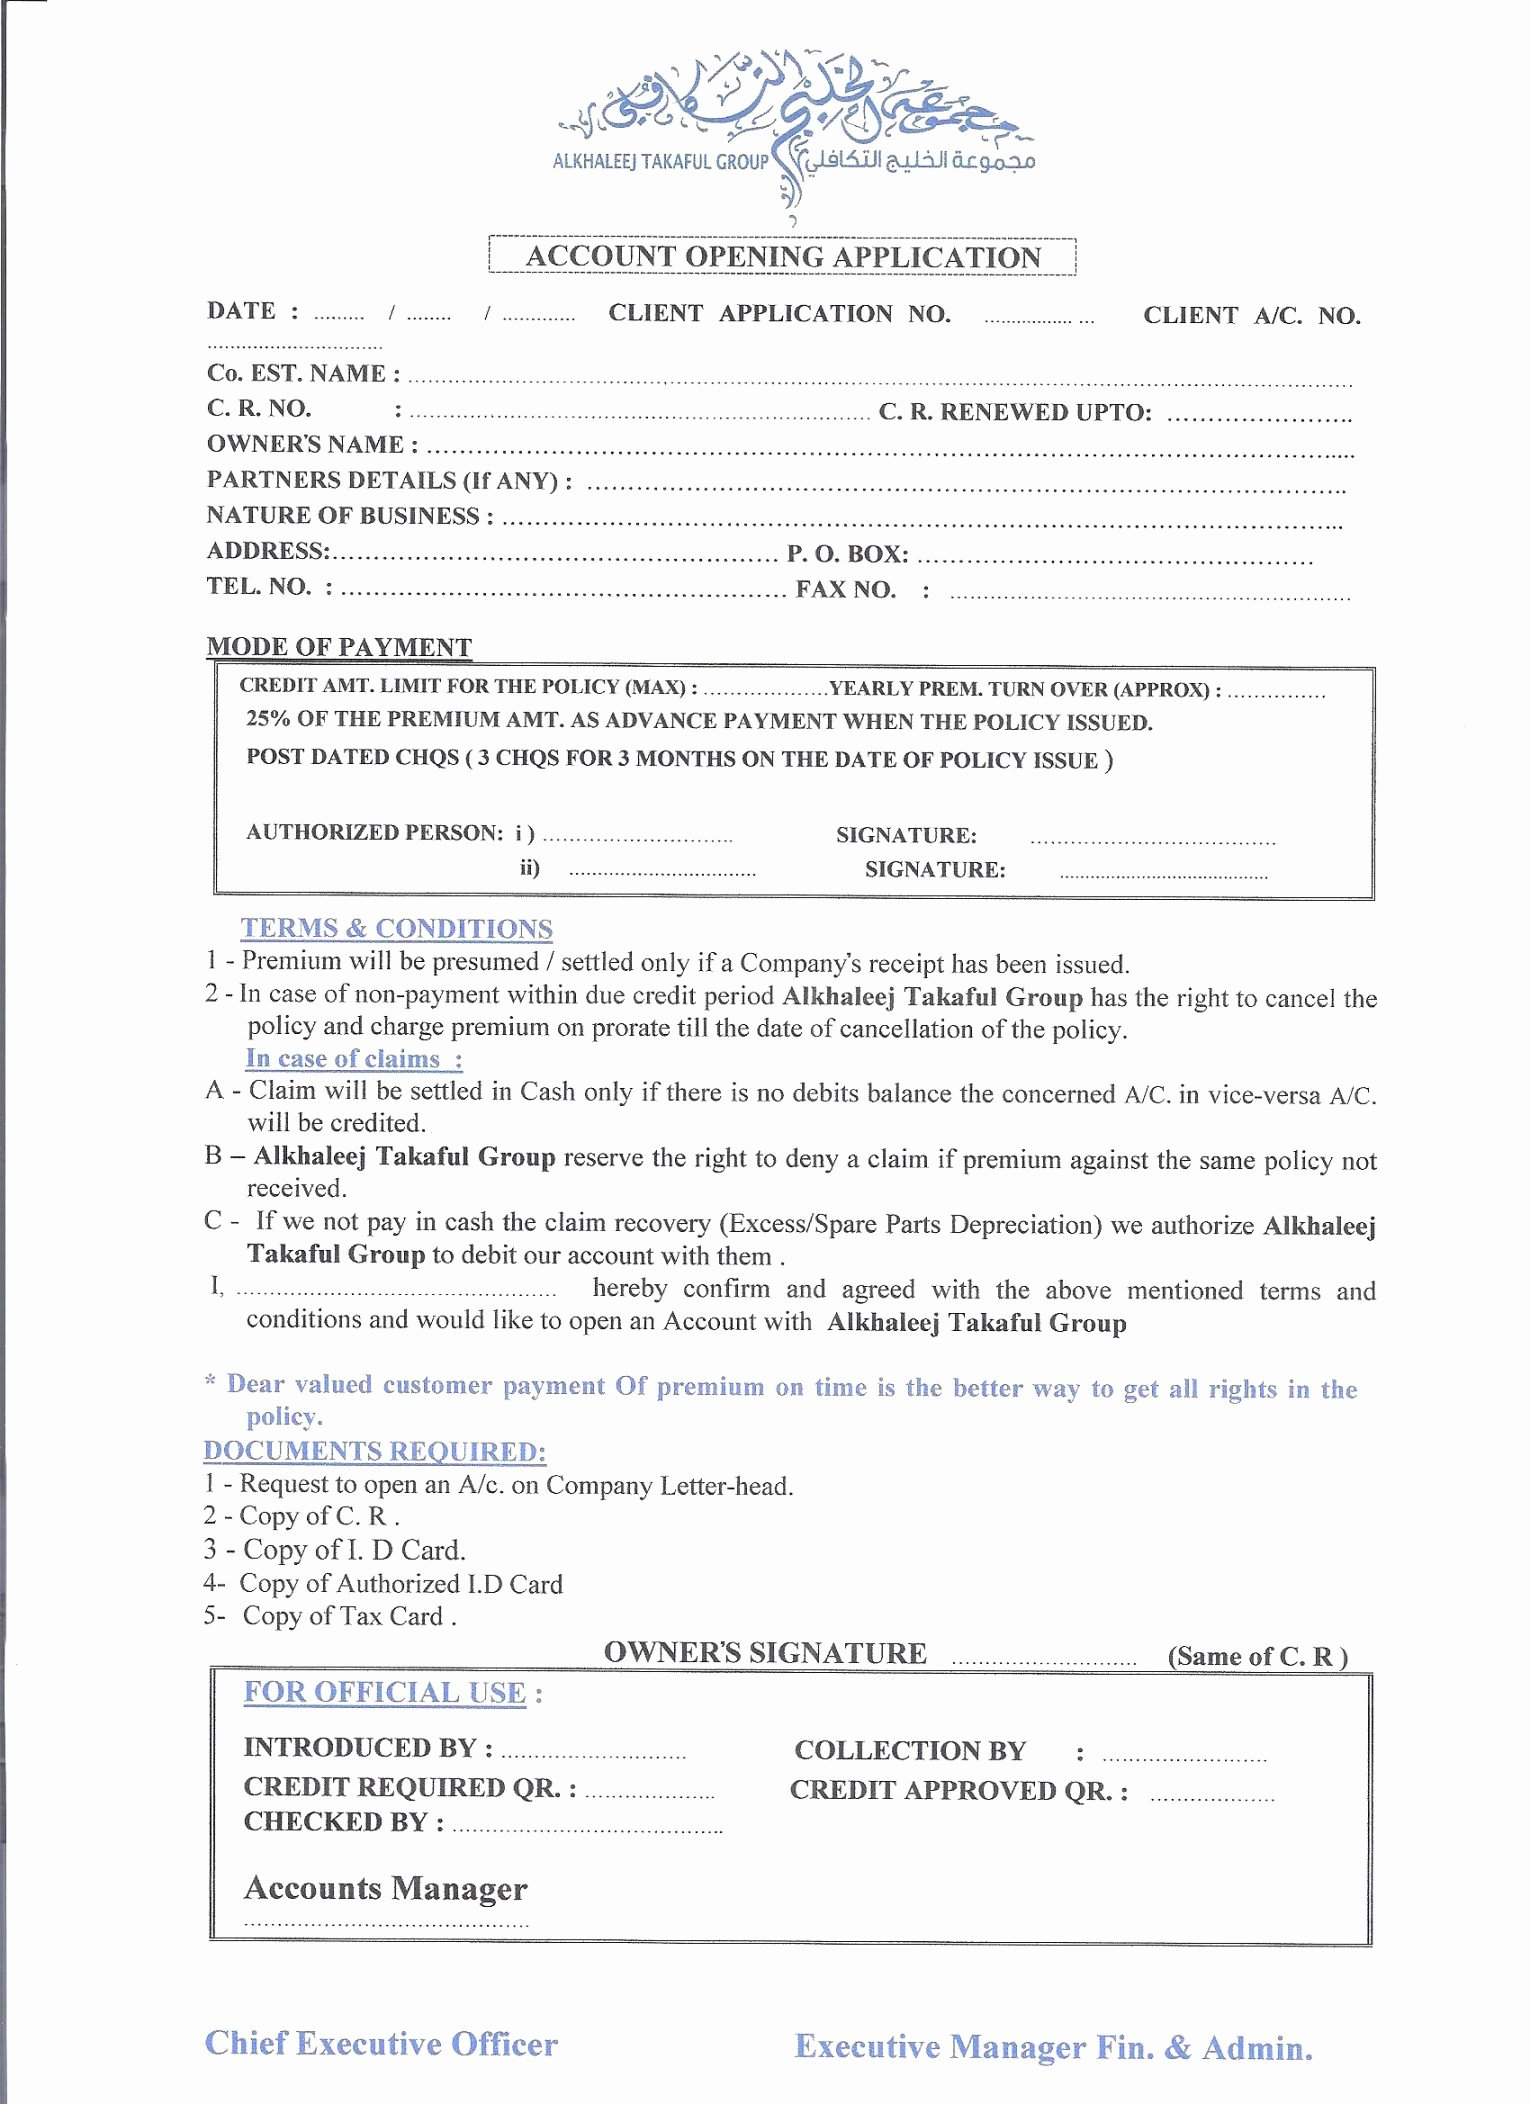 Alarm Certificate for Insurance Template Lovely Alarm Certificate for Insurance Template